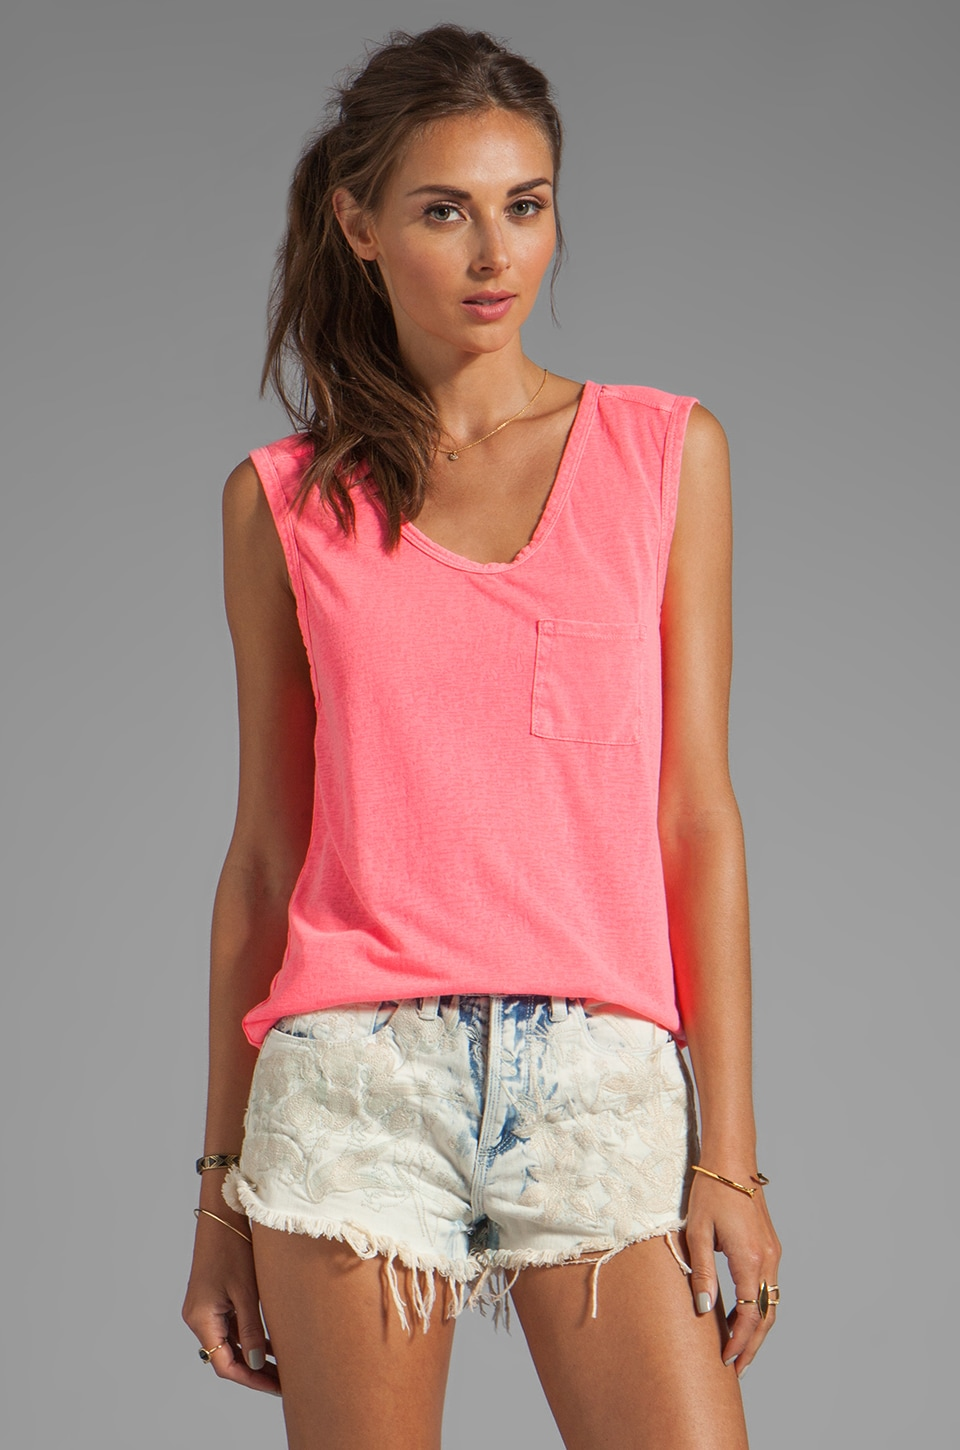 Bobi Burnout Pocket Tank in Sweettart